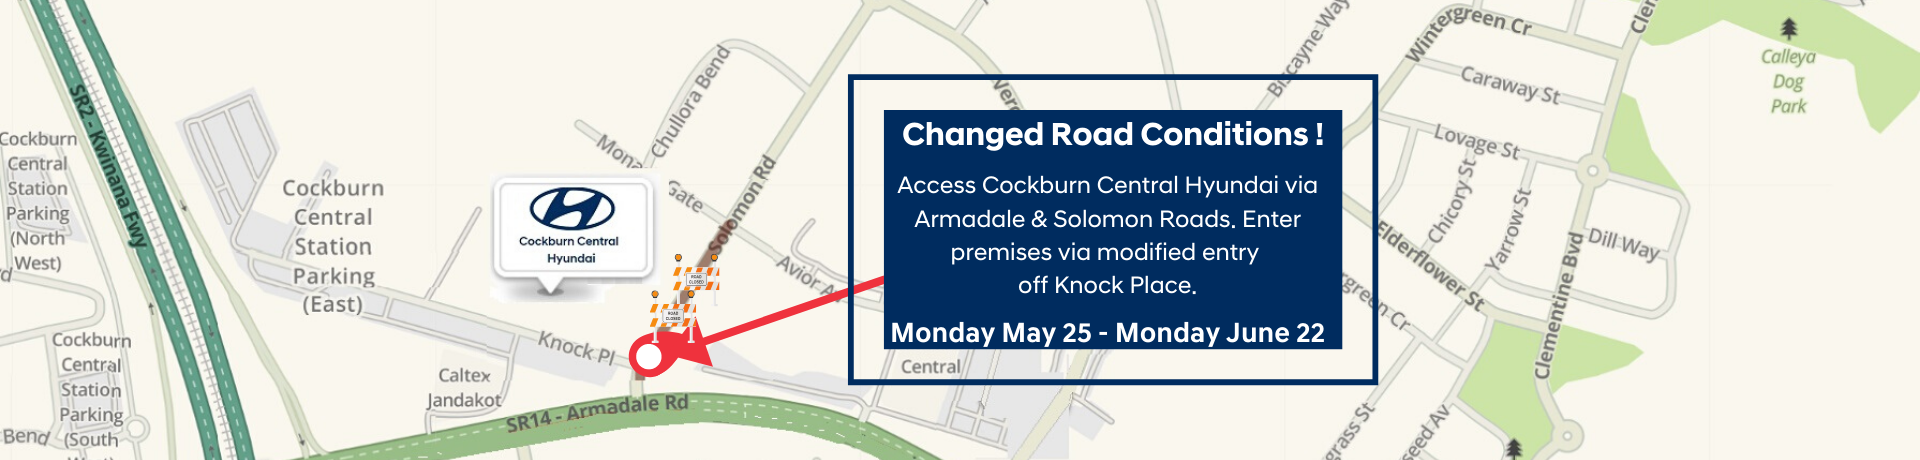 Changed-Road-Conditions-CCH